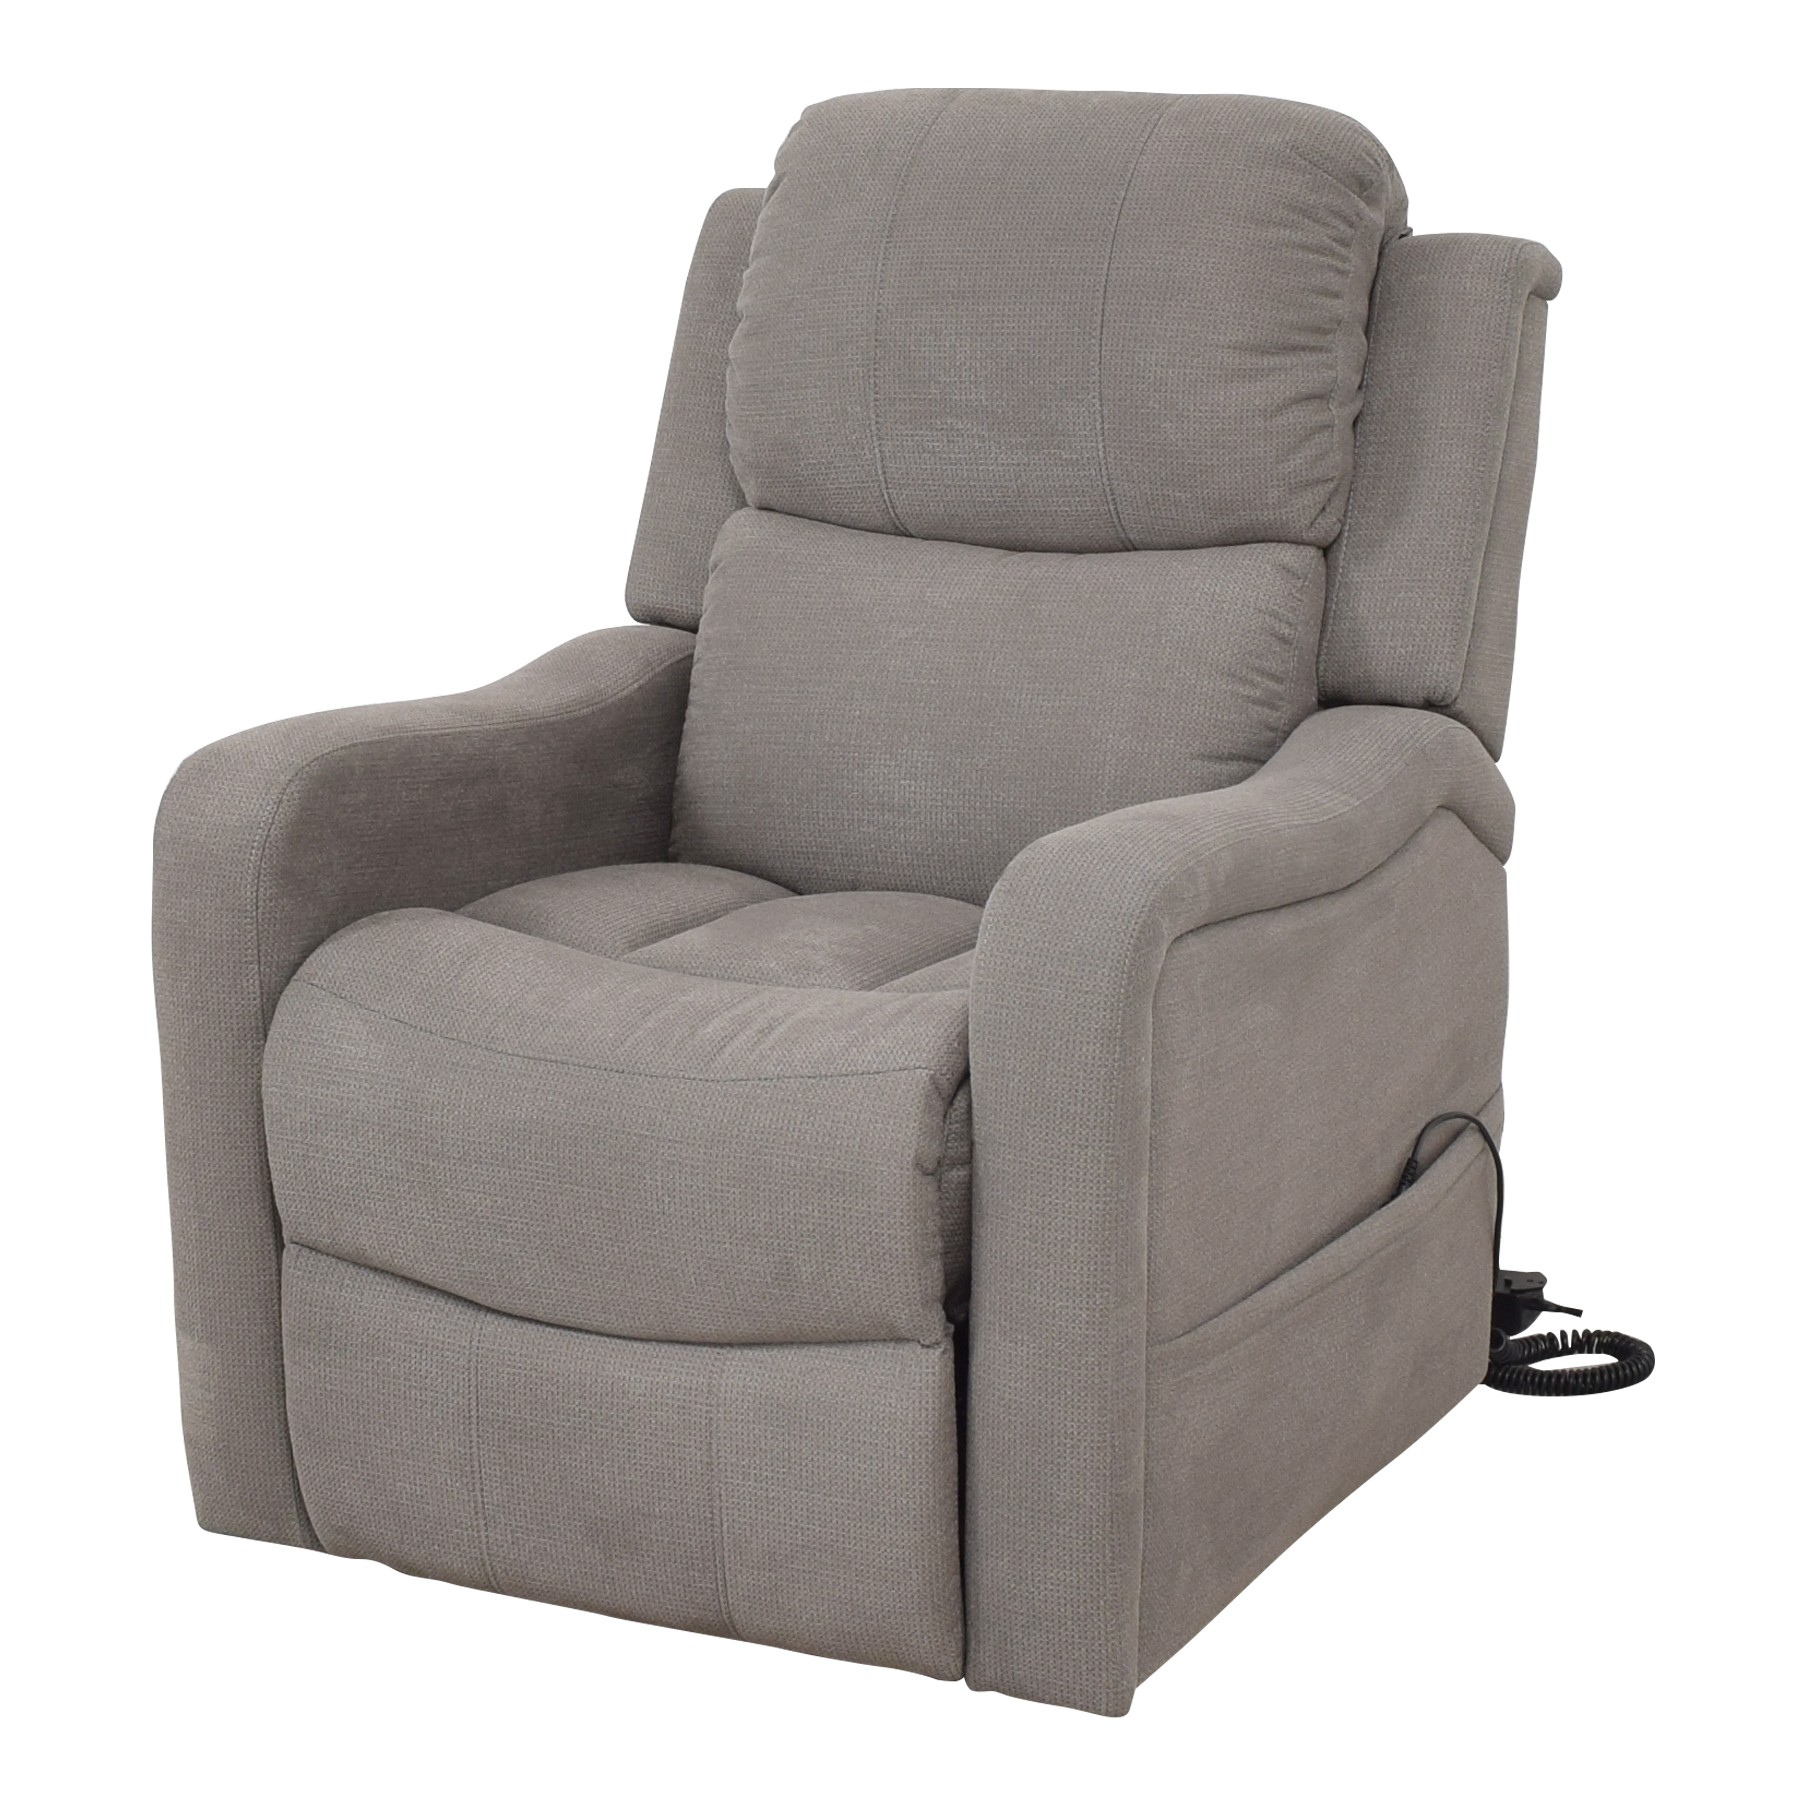 Copper River Home Copper River Home Therapedic Power Lift Reclining Chair coupon